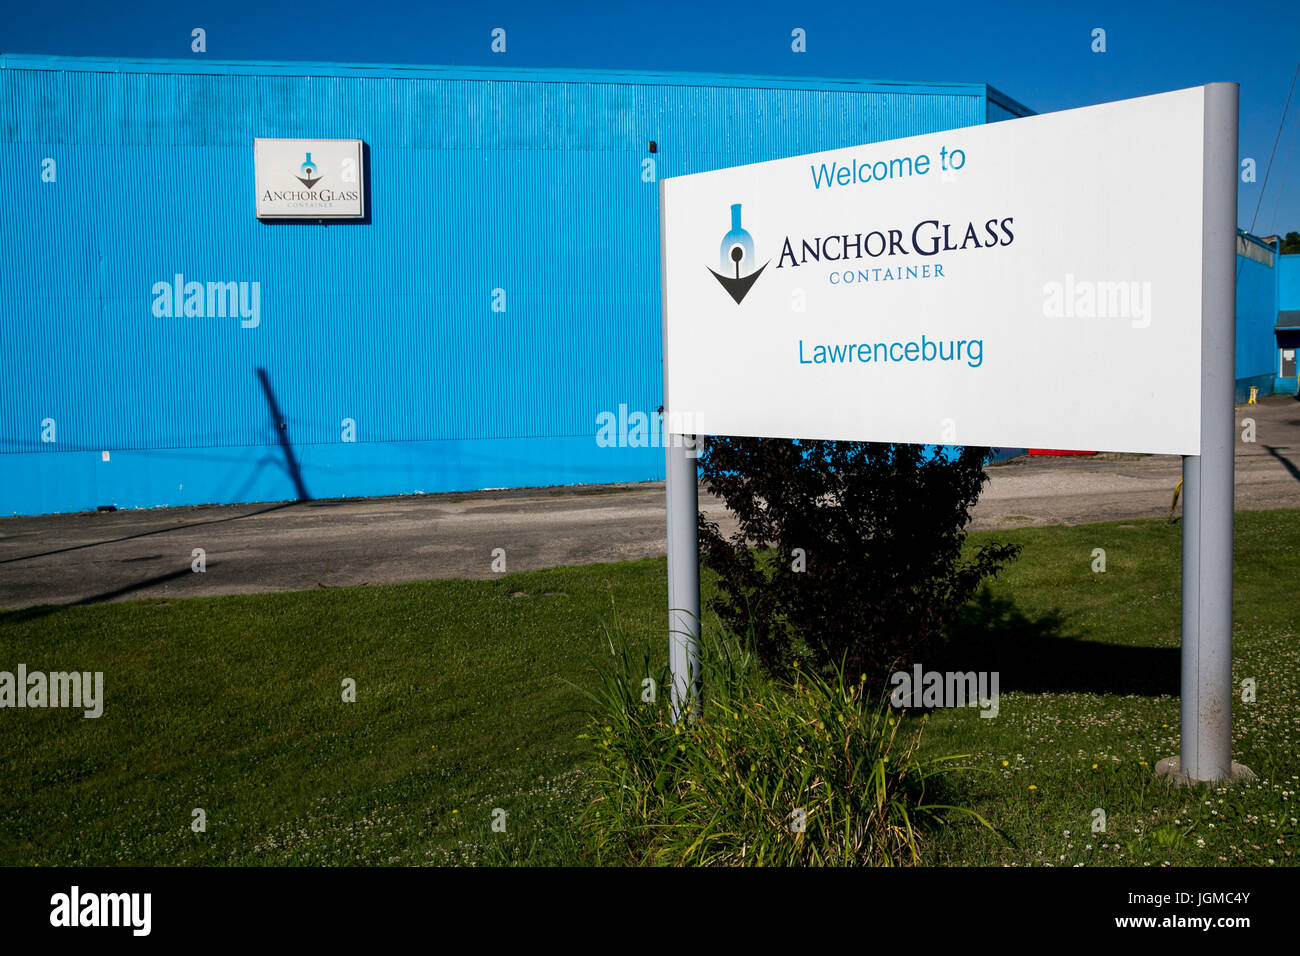 A logo sign outside of a facility occupied by Anchor Glass Container Corporation in Lawrenceburg, Indiana on July - Stock Image